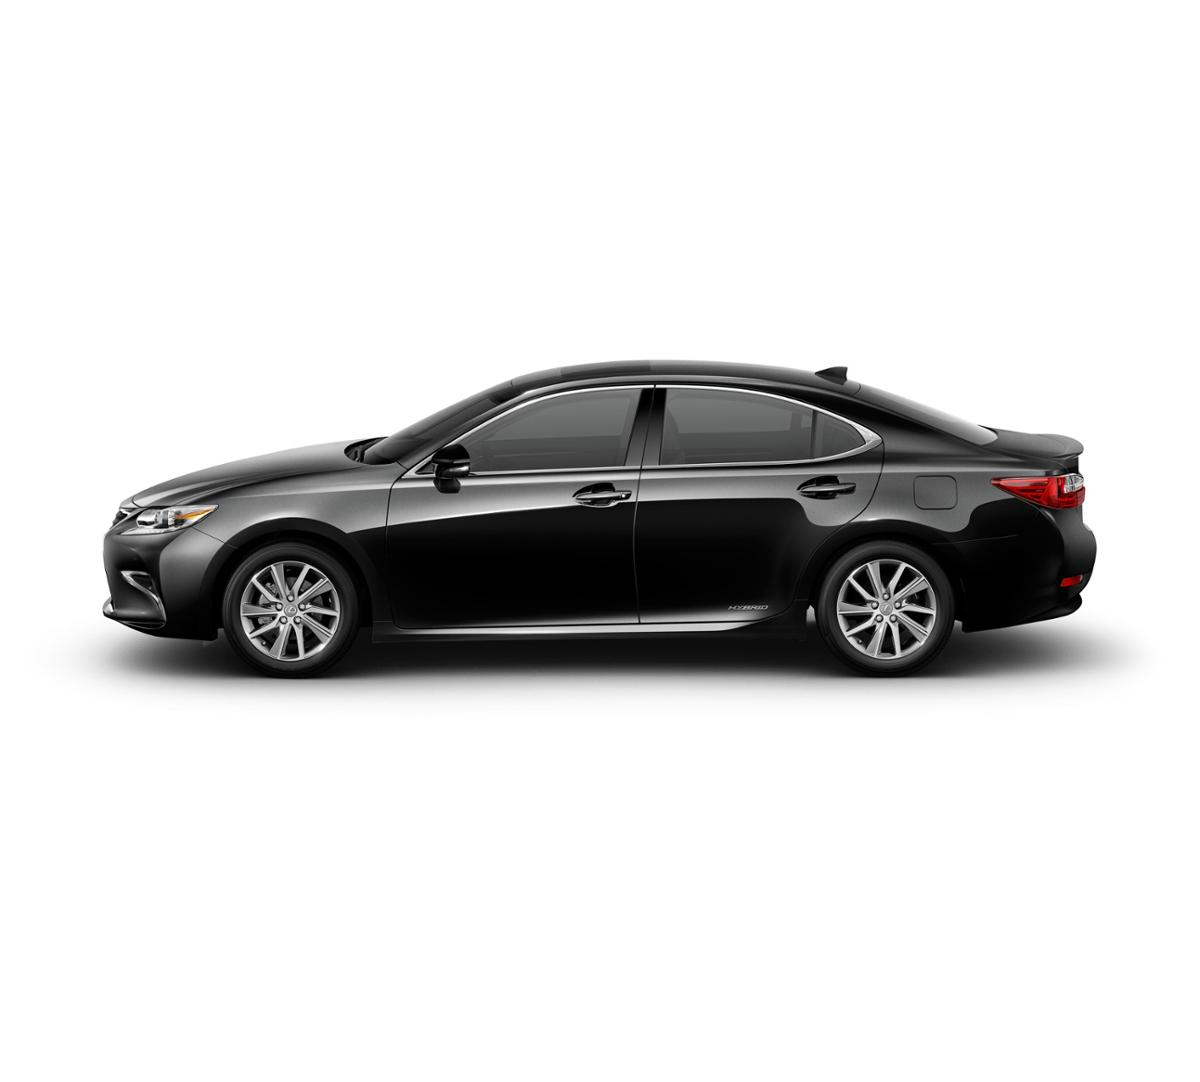 2018 Lexus ES 300h Vehicle Photo in Las Vegas, NV 89146